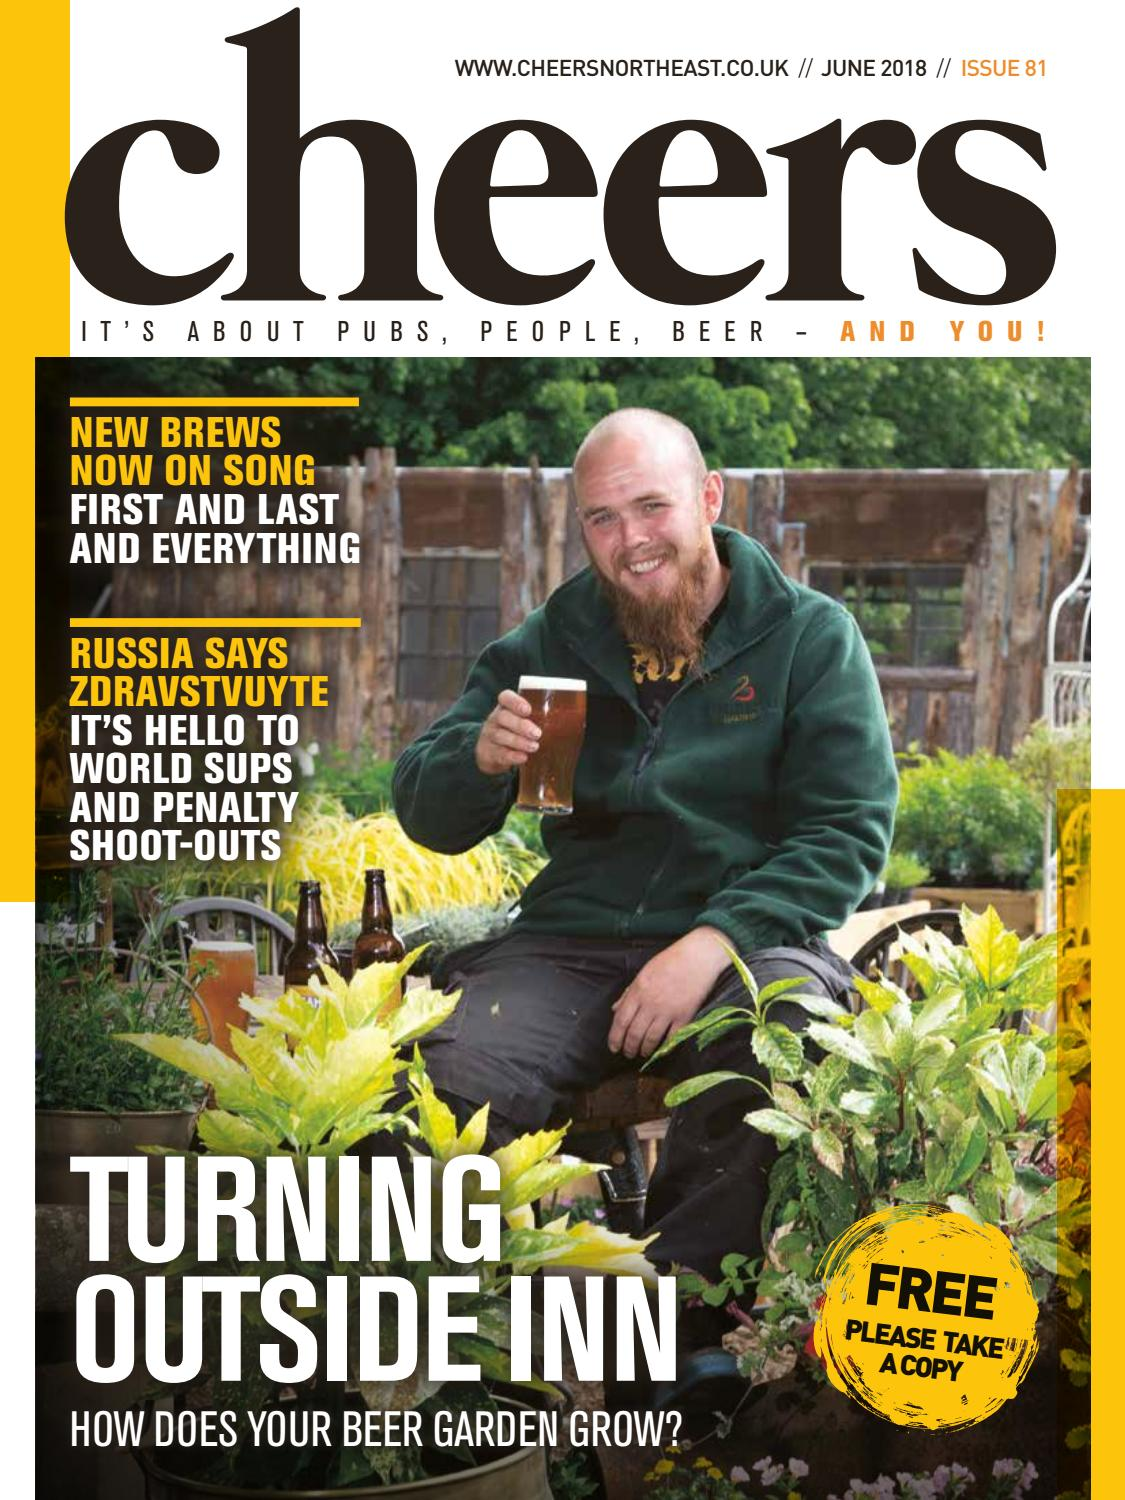 Cheers North East magazine #81 - May 2018 by Offstone